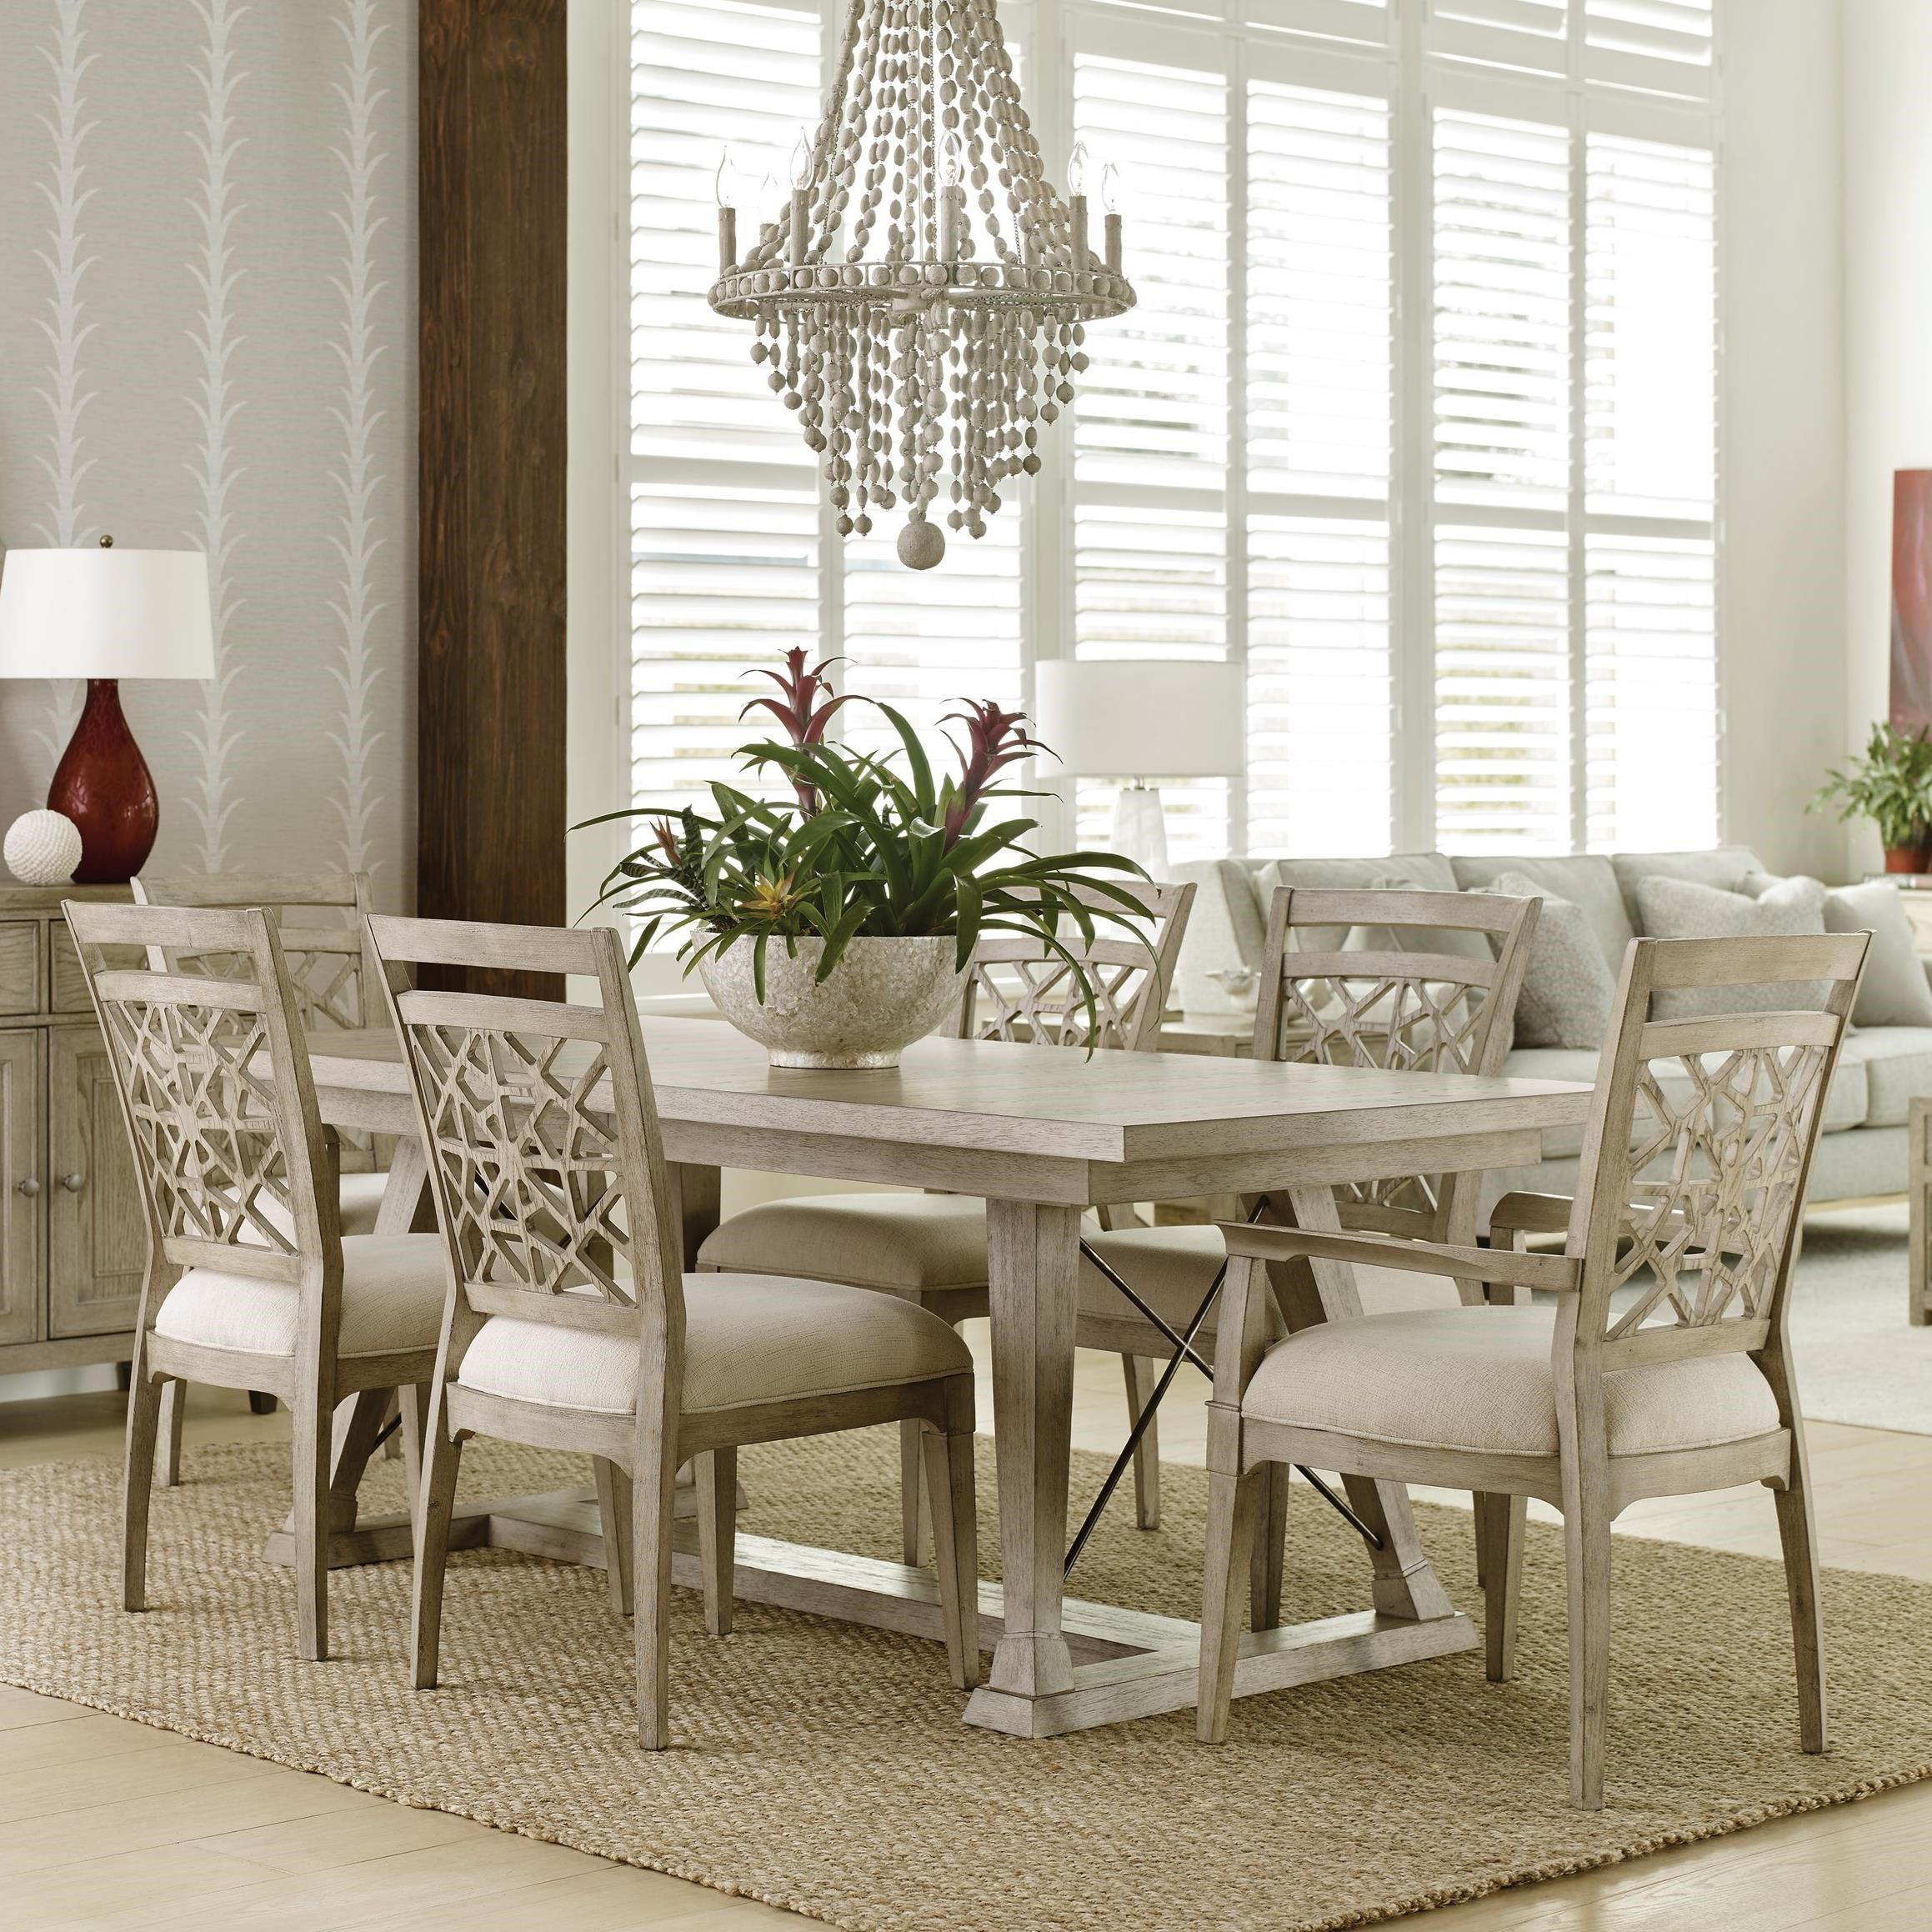 7 Piece Dining Set with Removable Leaves